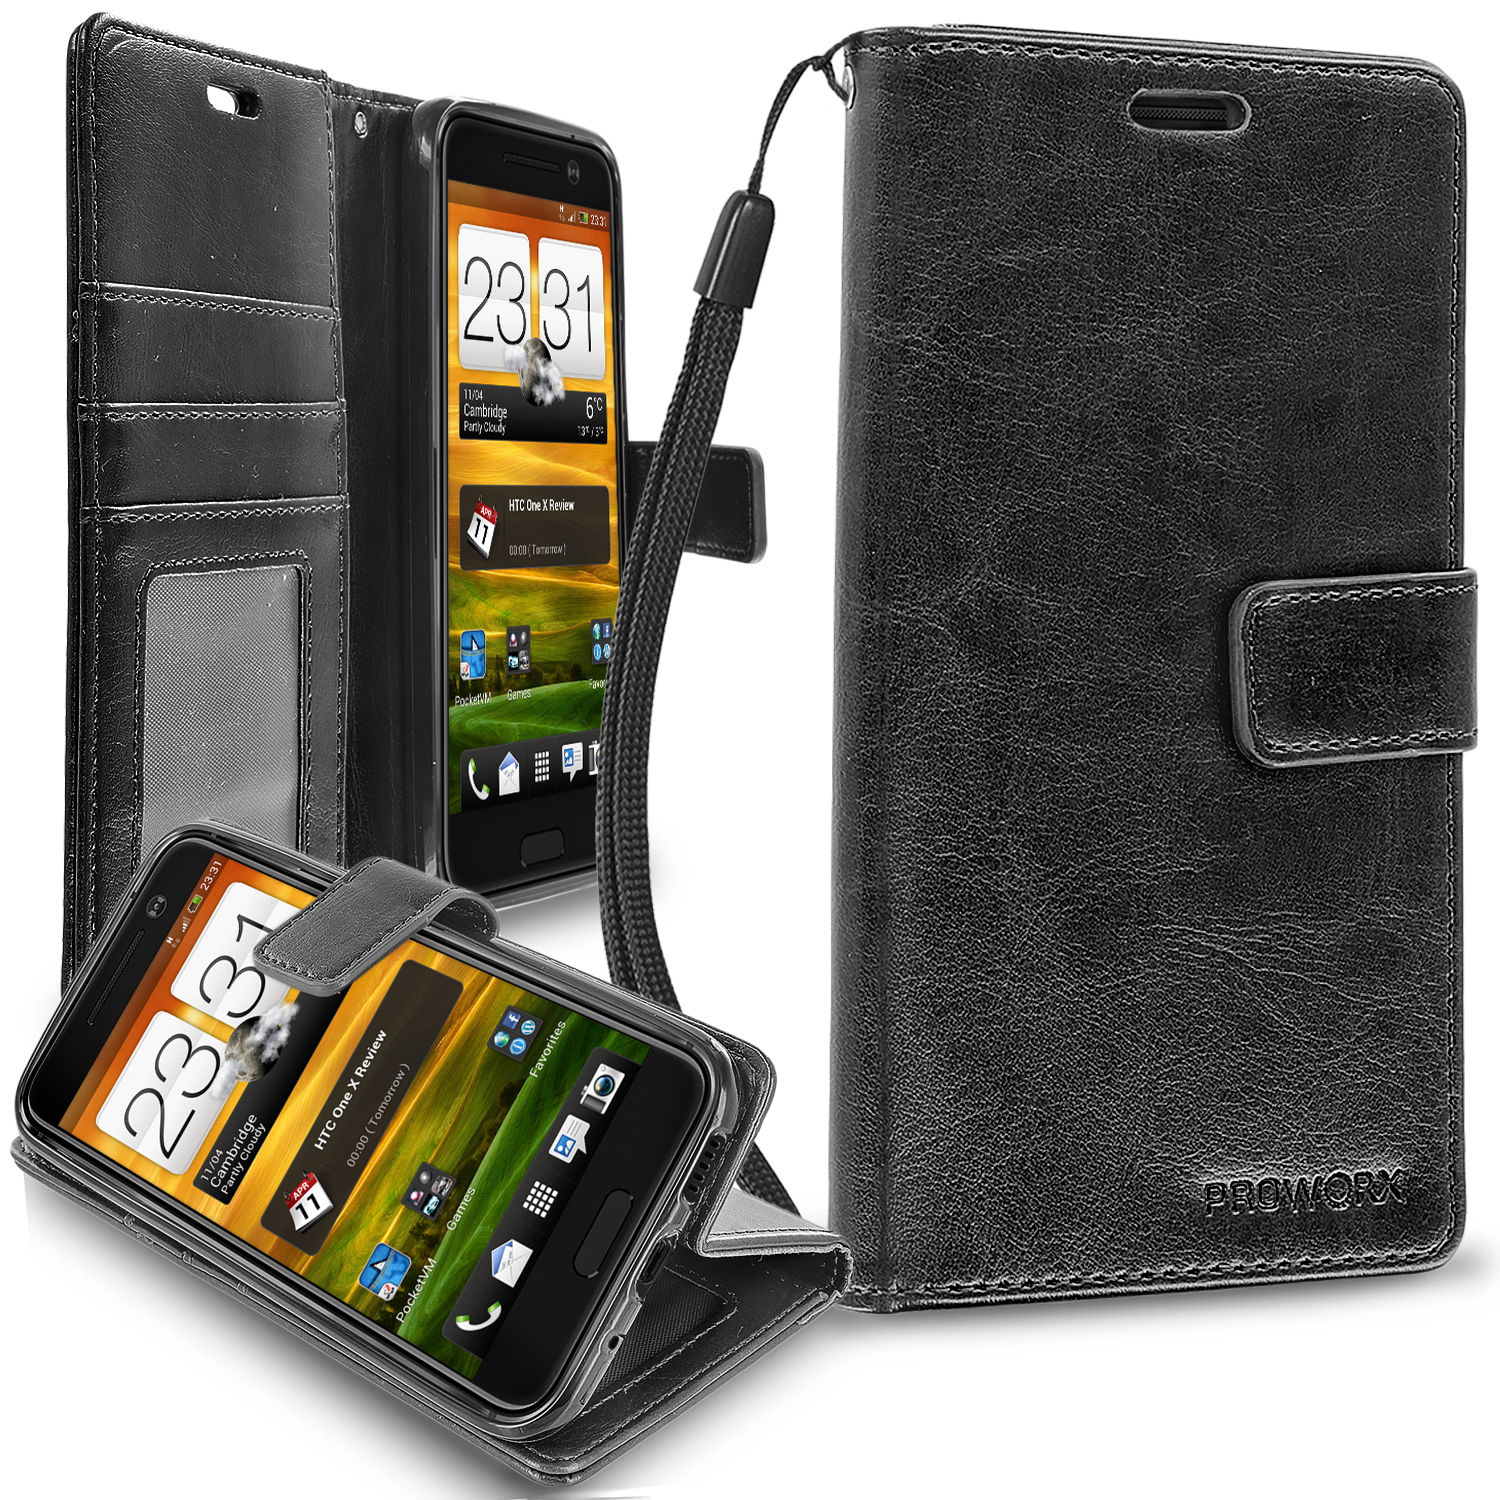 HTC One 10 M10 Black ProWorx Wallet Case Luxury PU Leather Case Cover With Card Slots & Stand